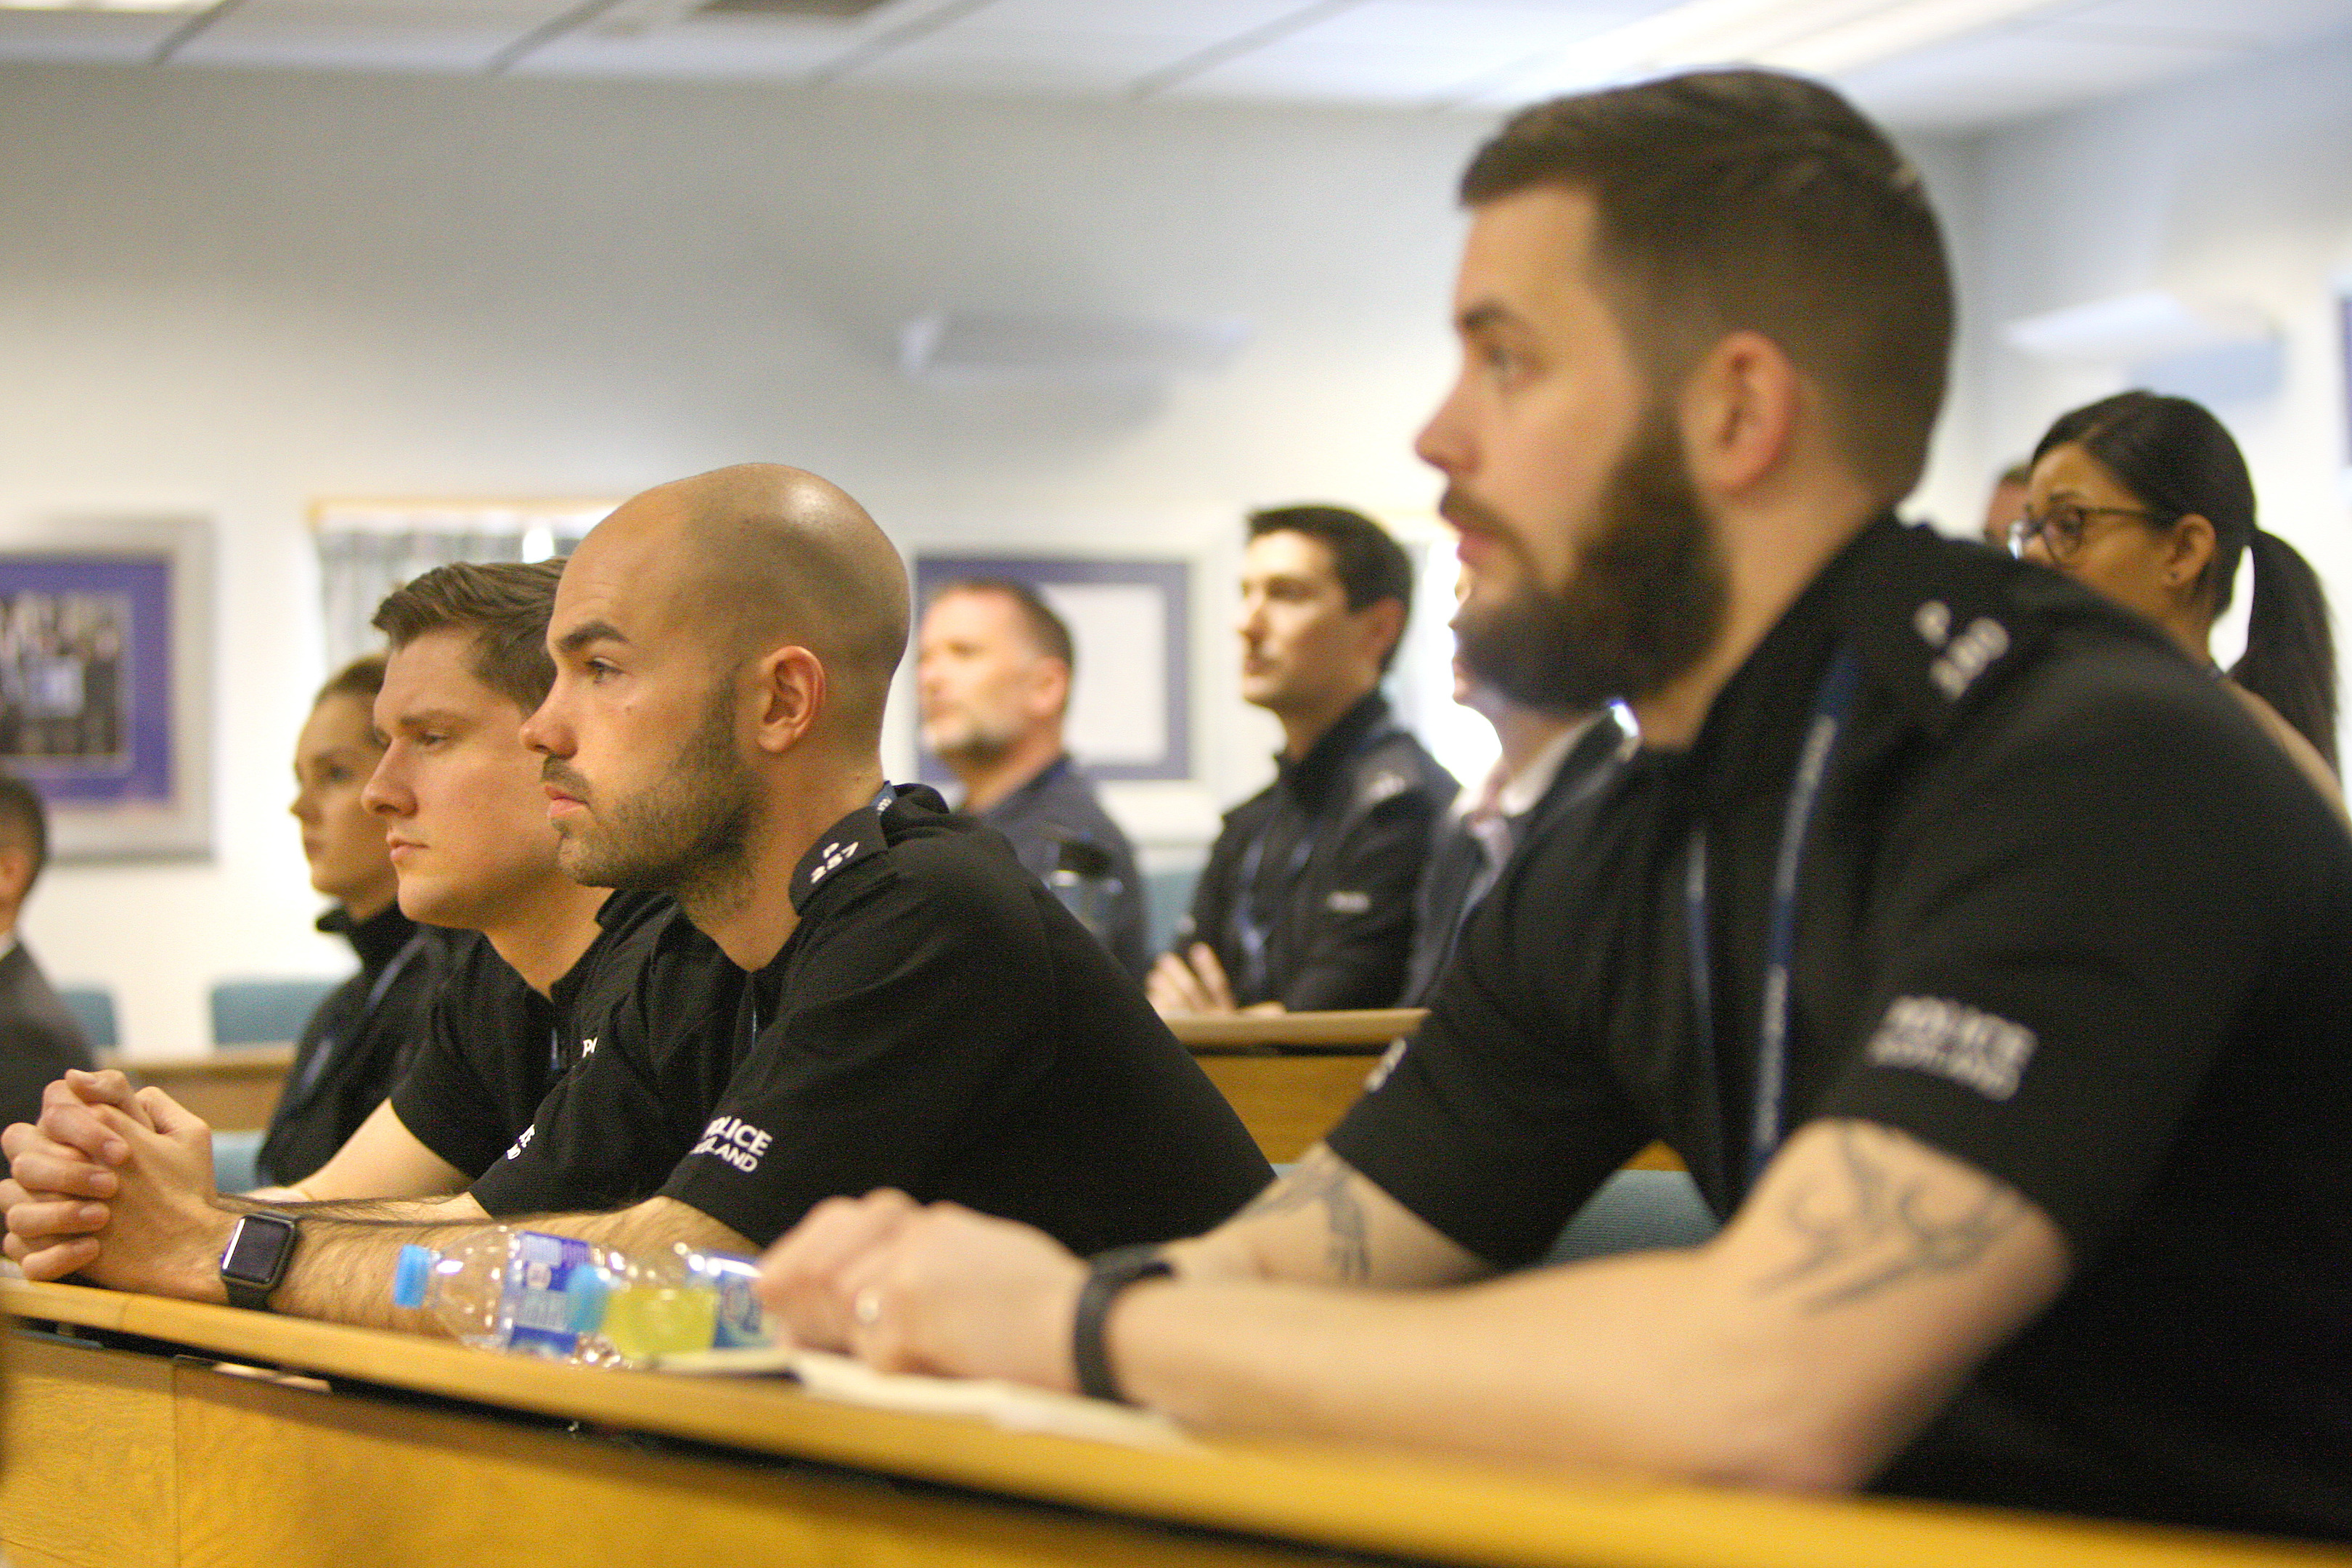 Police receiving their training in Glenrothes.